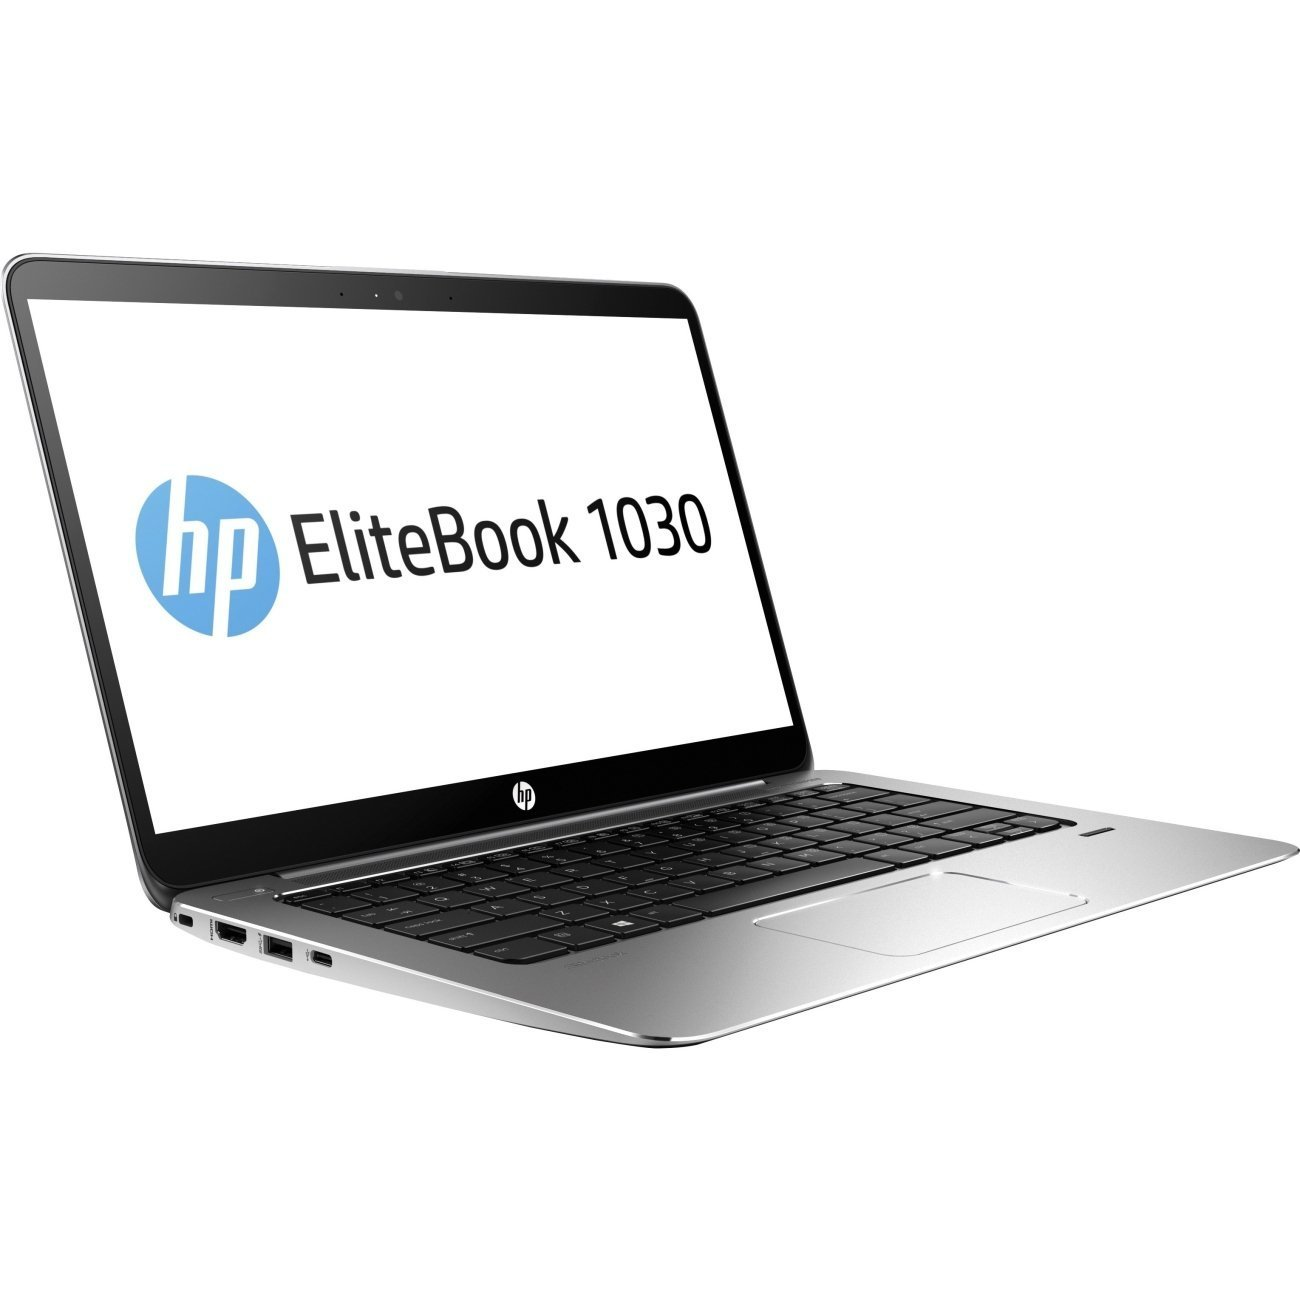 HP Elitebook 1030-G1 13.3''AGFHD Business Notebook Intel:M5-6Y57/CM5-1.10GULV 16GB/2-DIMM 256GB/SSD Win10 Pro-64 (Certified Refurbished) by HP